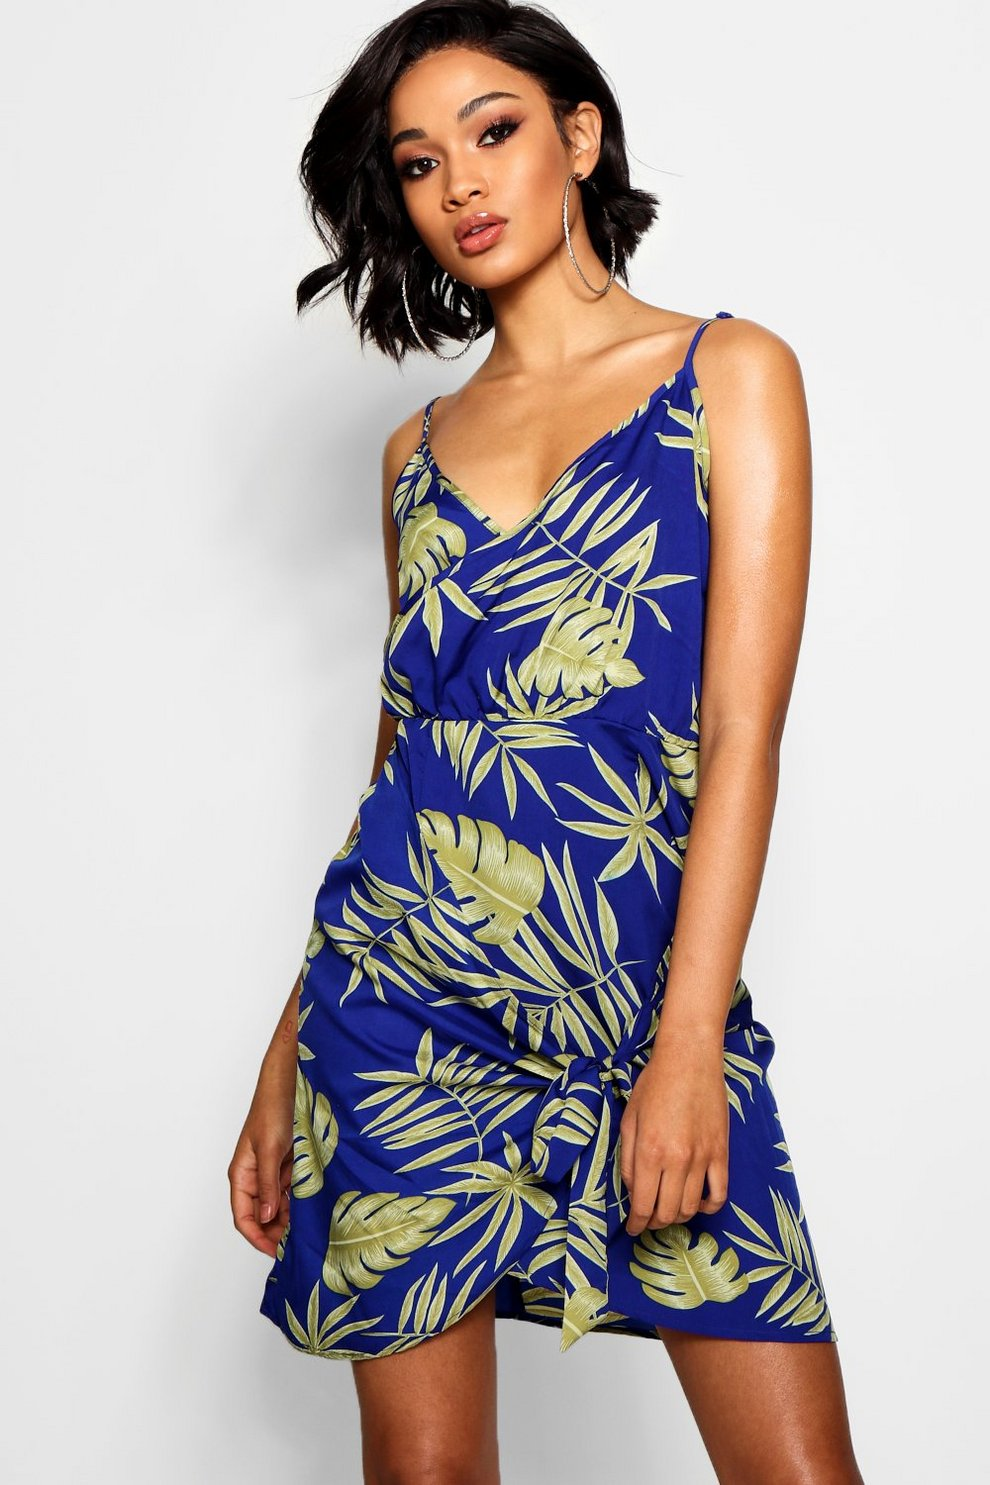 Buy Cheap Release Dates Footlocker Boohoo Tie Shoulder Wrap Palm Print Shift Dress Authentic Cheap Price Cheap Sale Ebay Outlet Best Place KE3s3vbqH